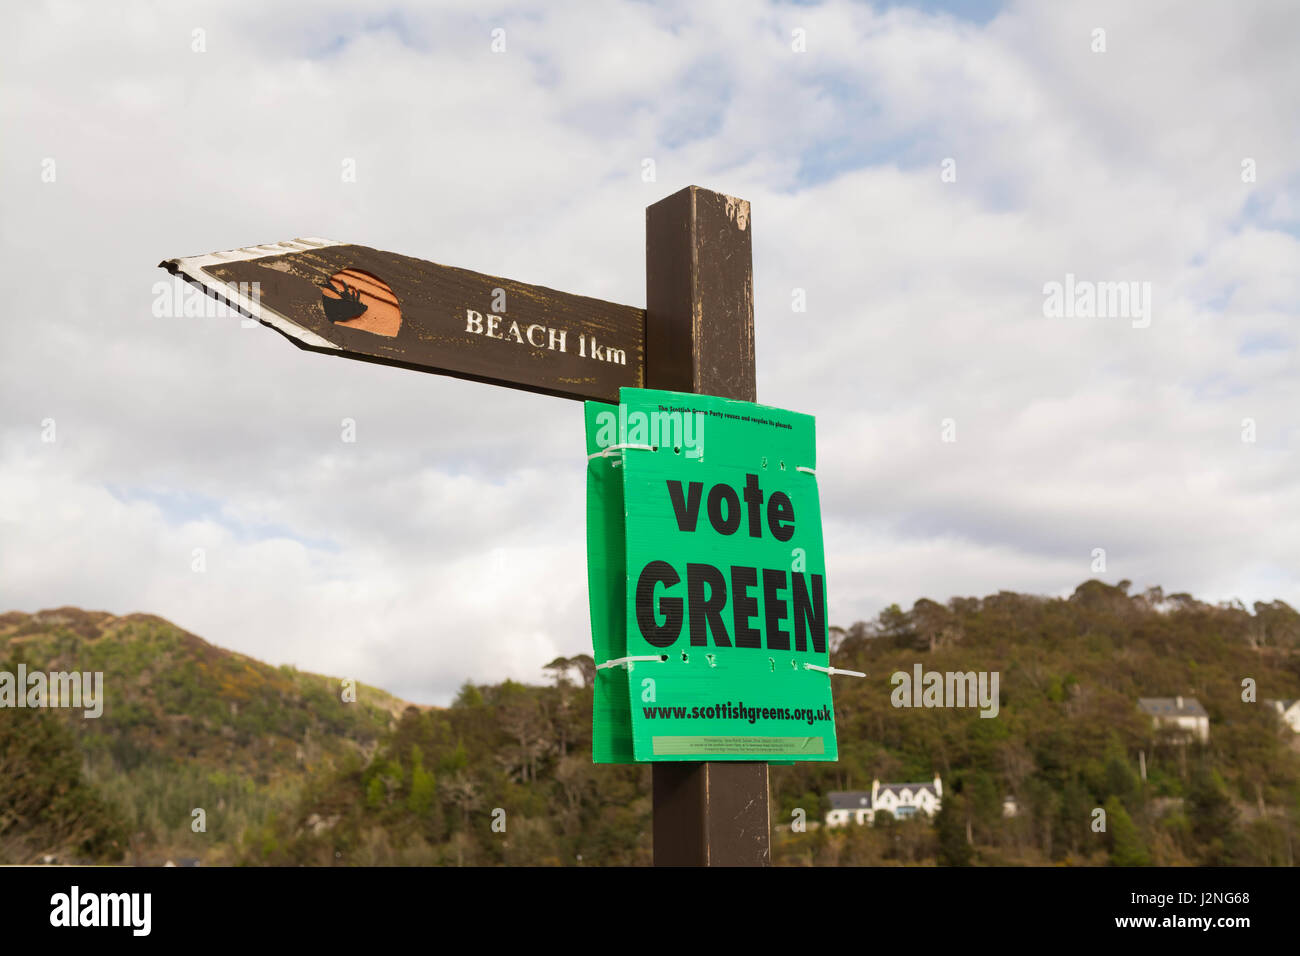 Vote Green election sign - Highlands and Islands, Scotland - Stock Image